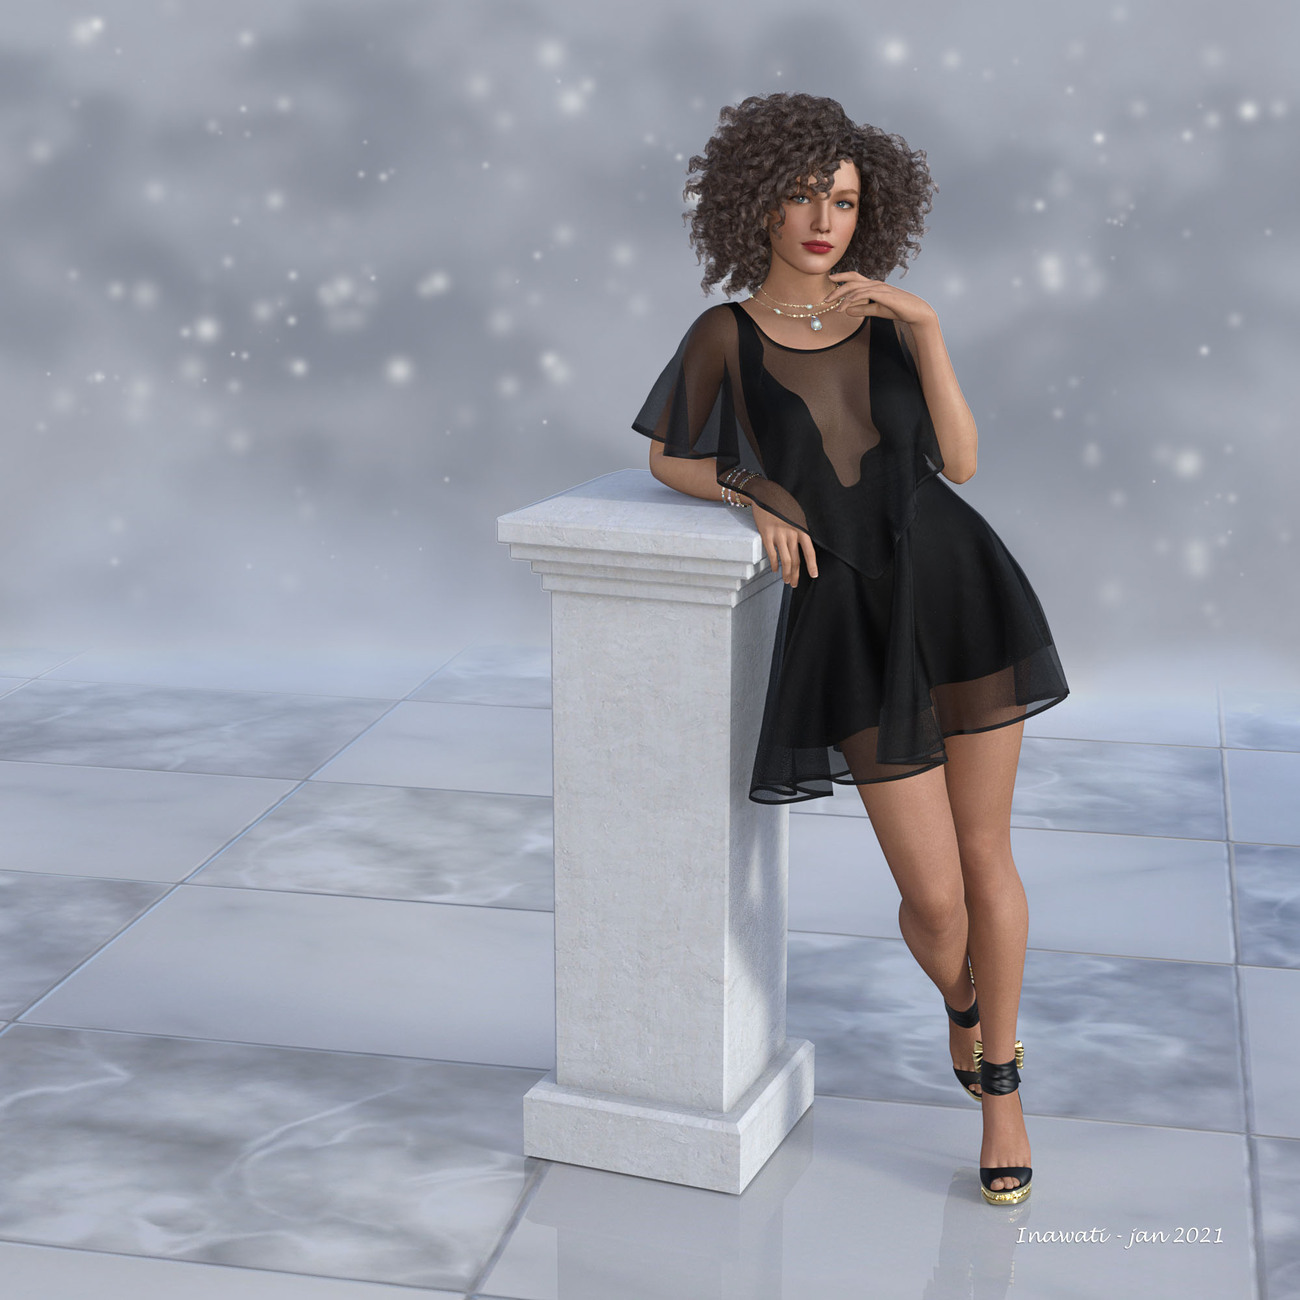 Dress in Black by Inawati